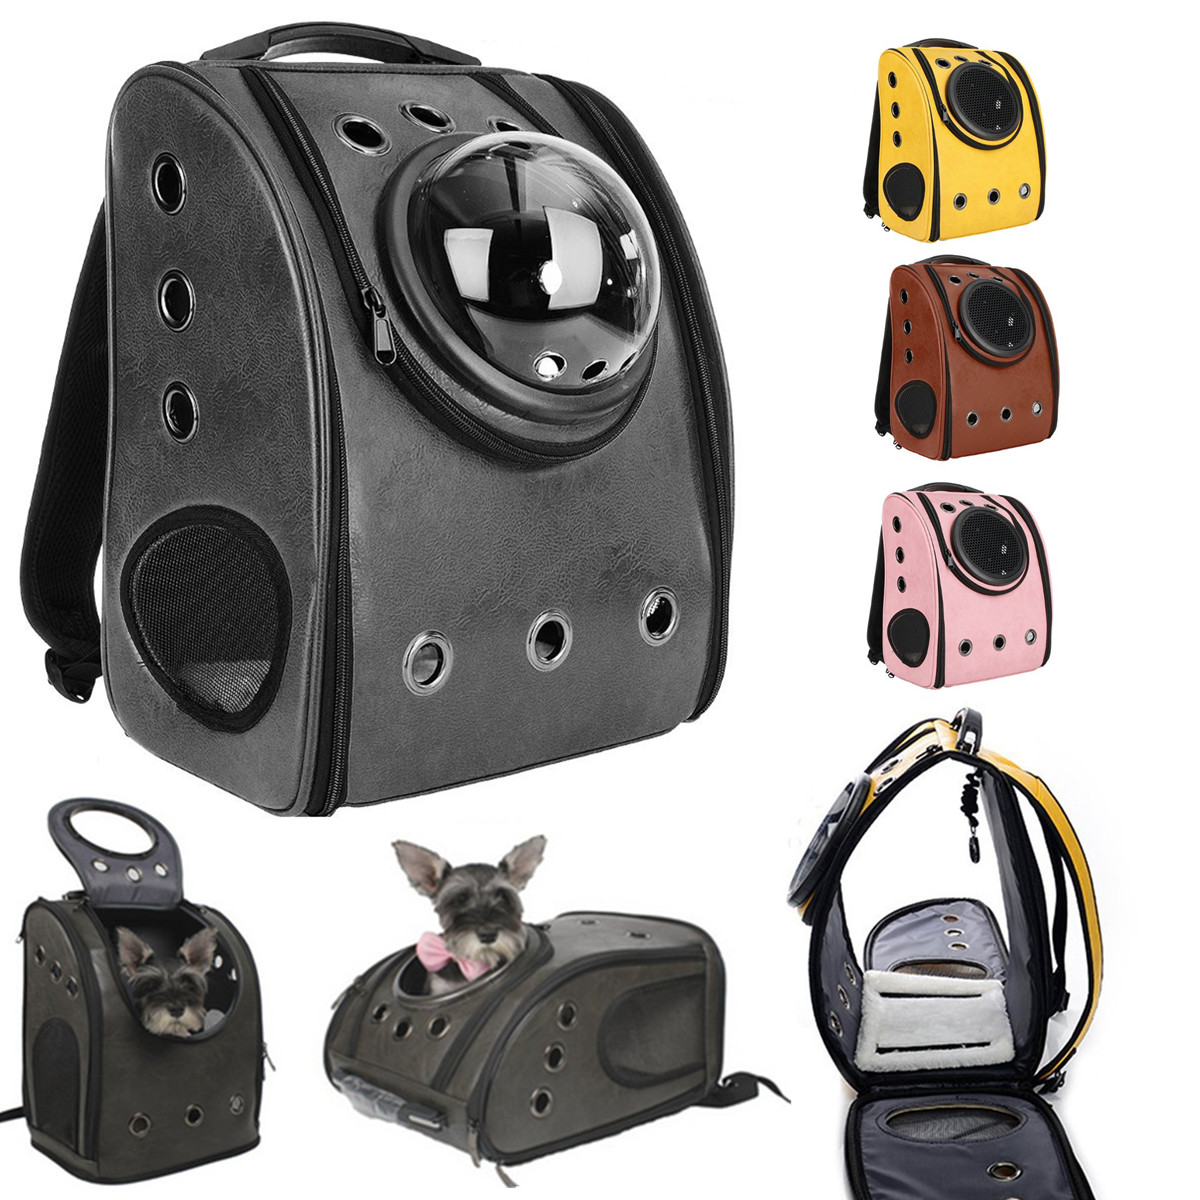 Waterproof Portable Pet Carrier Space Capsule Breathable Shoulder Backpack Bubble Traveler Knapsack Travel Outdoor Cage Mobile House Bed for Cats Small Dogs & Petite Animal Puppy